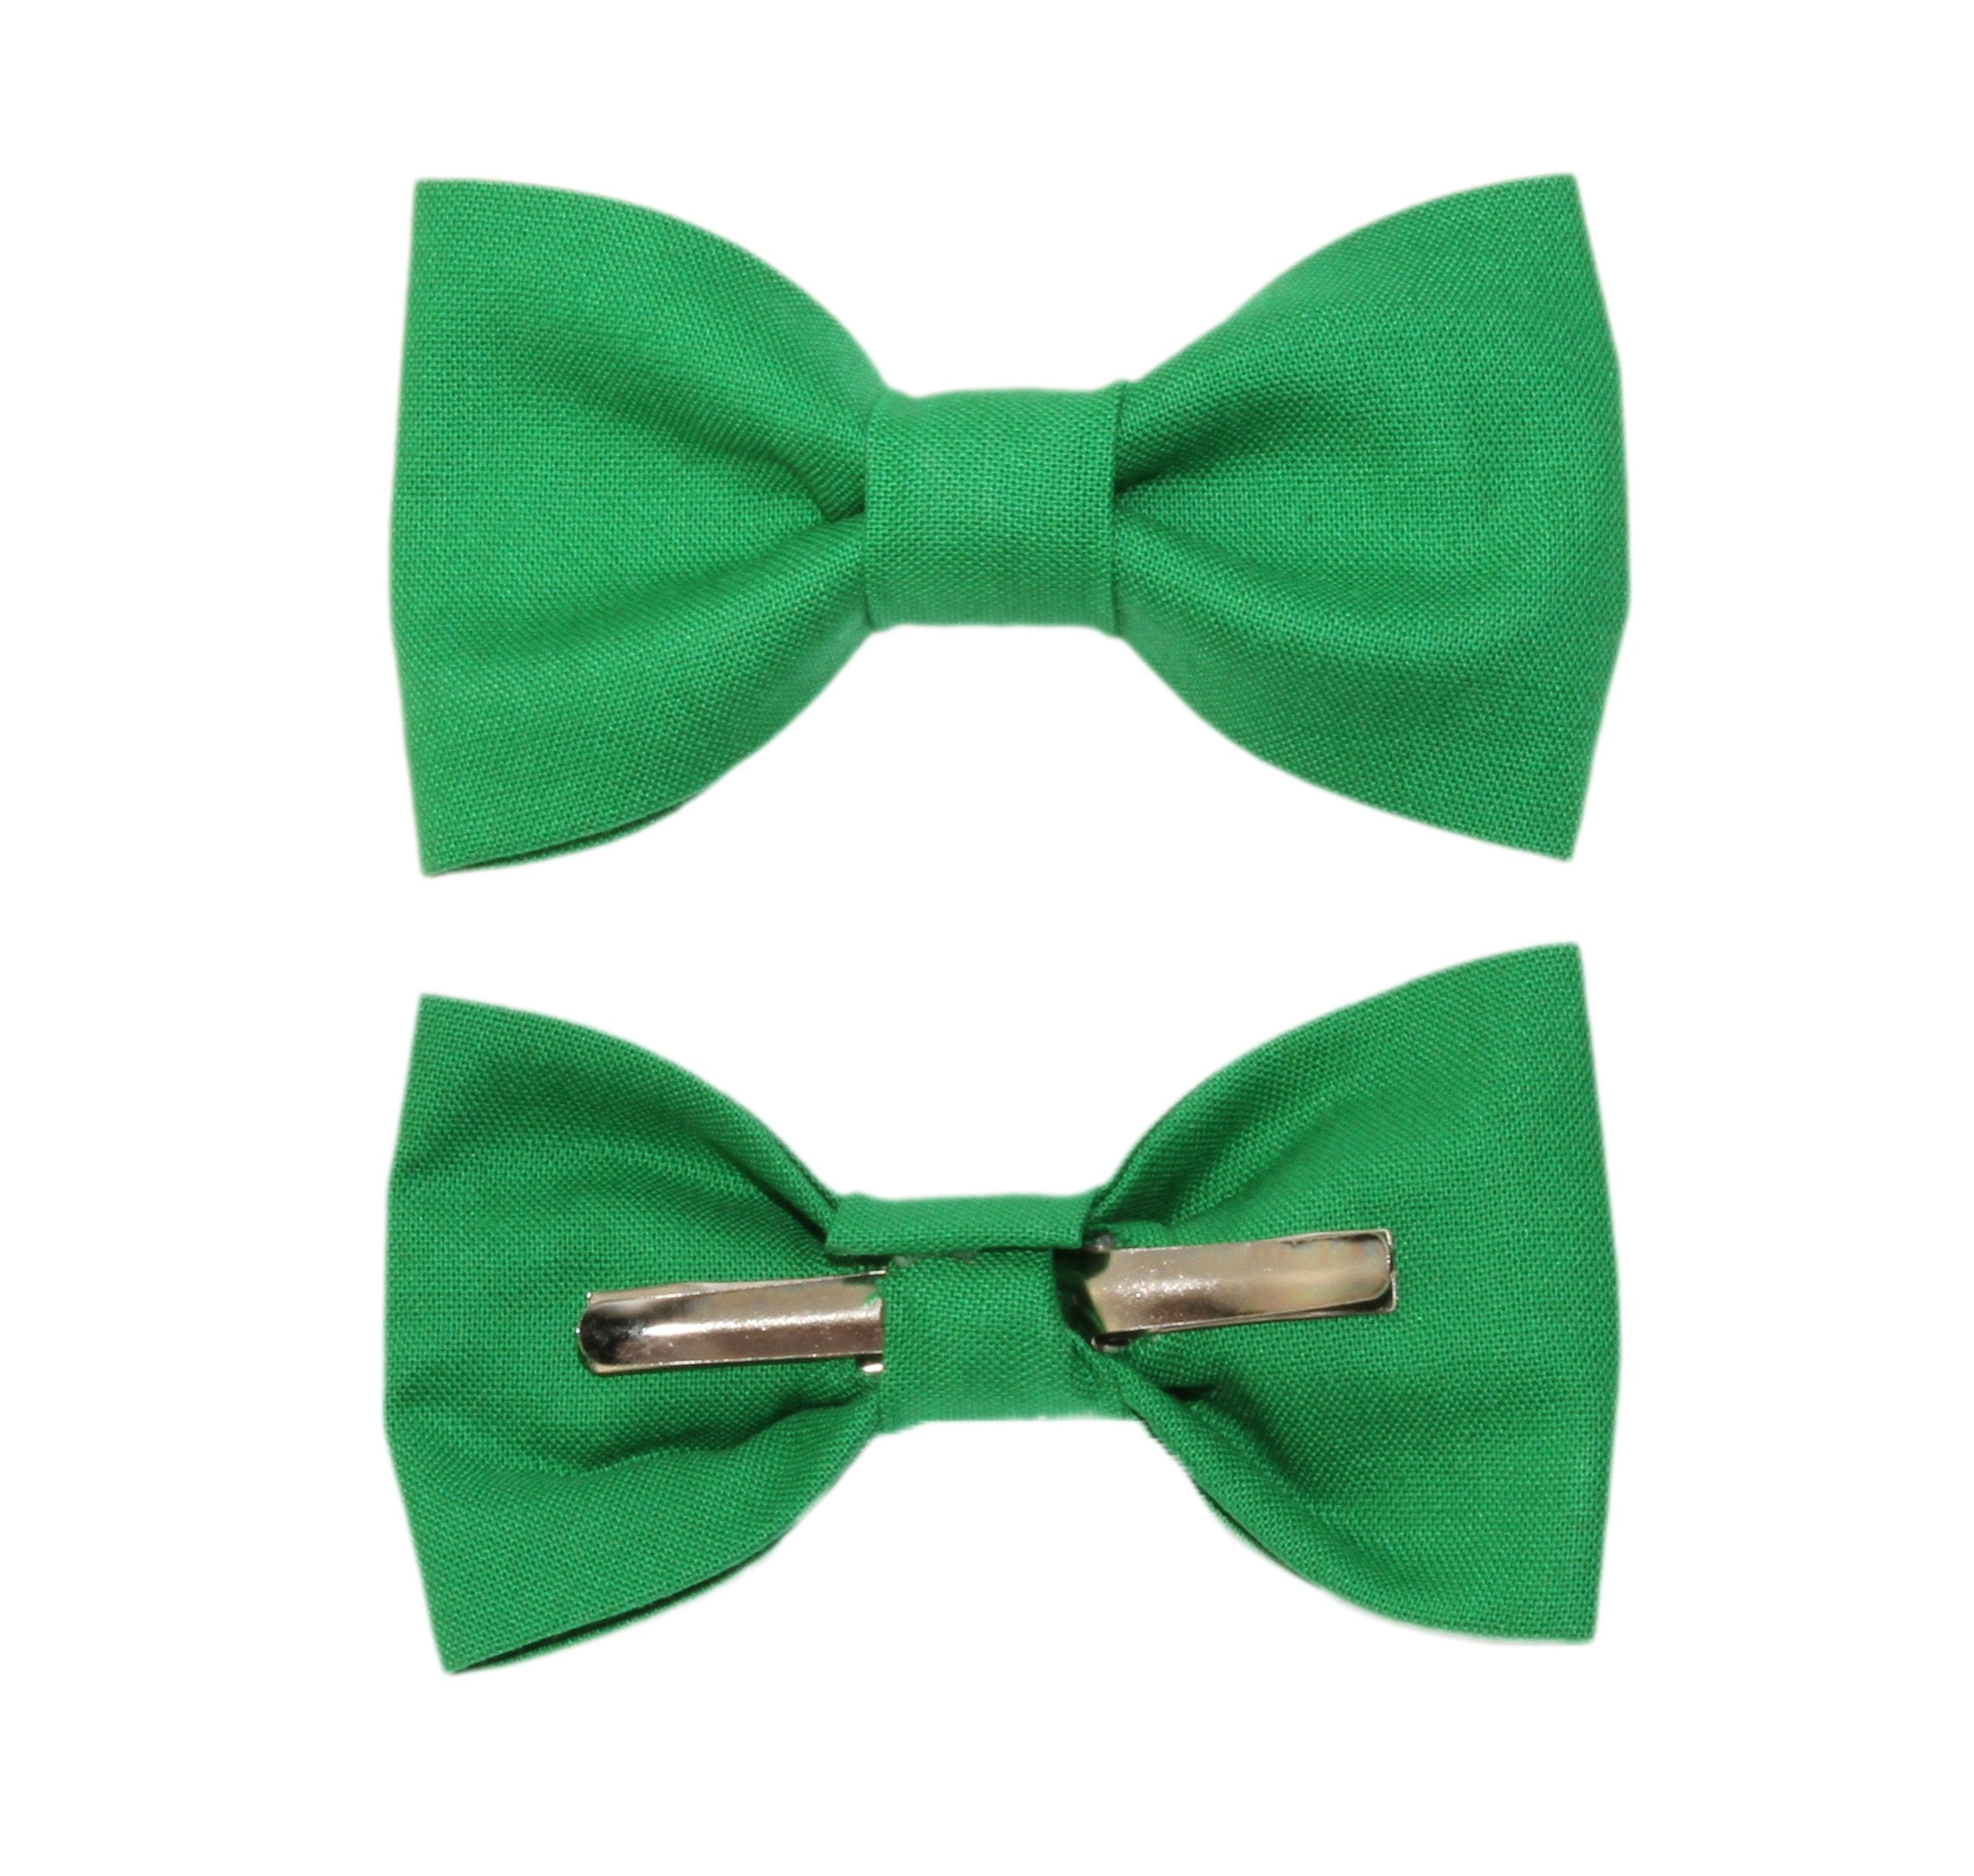 Toddler Boy 4T 5T Green Clip On Cotton Bow Tie Bowtie